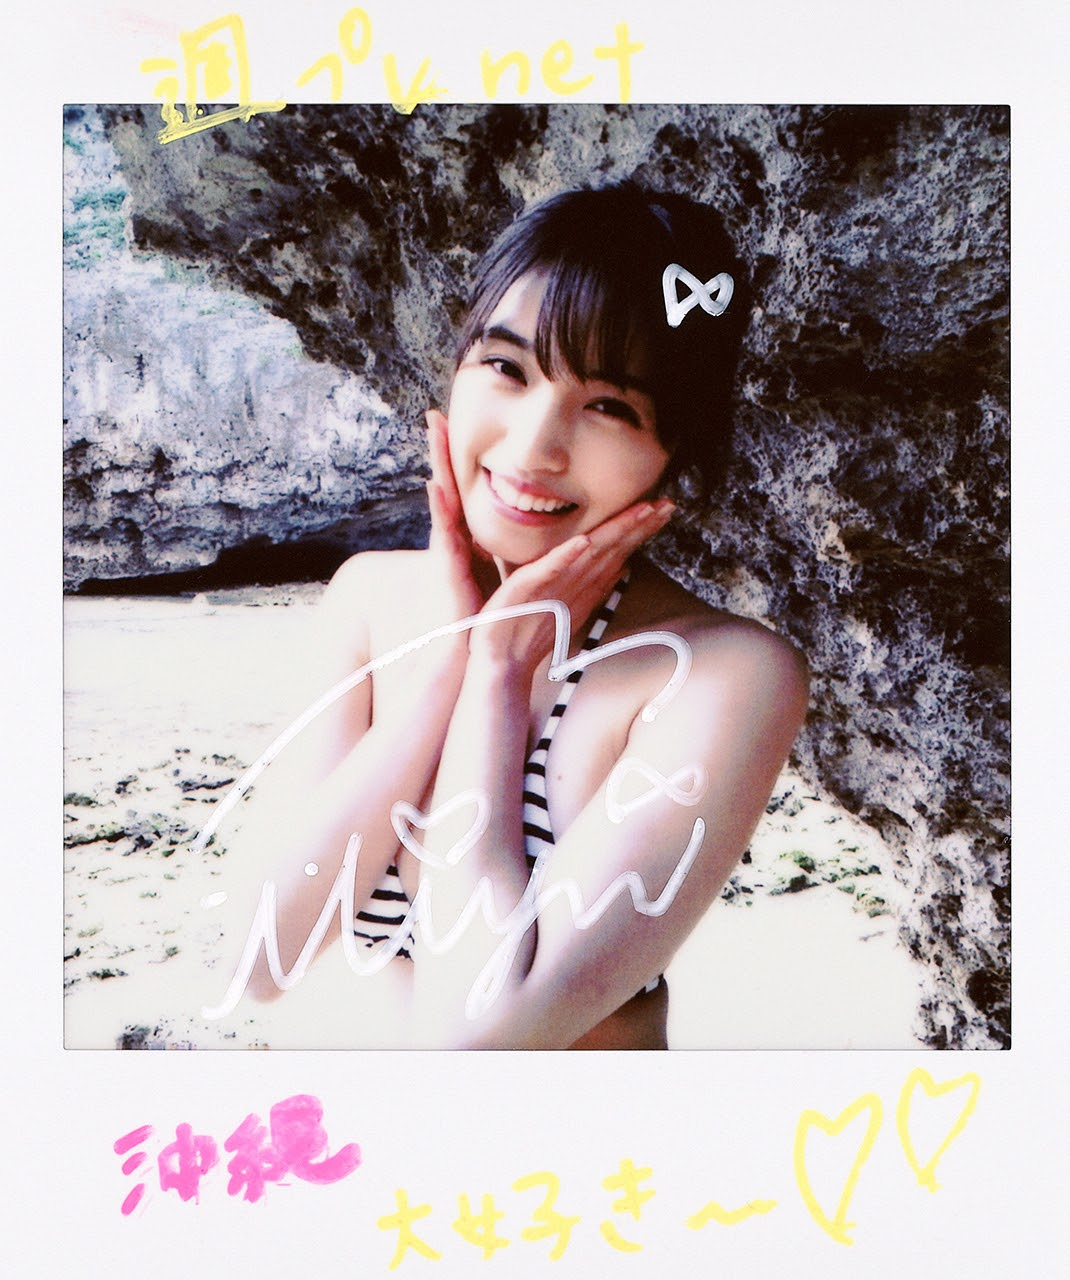 Gravure world treasure BODY Dynamic Miyubai pops up in winter in Okinawa130